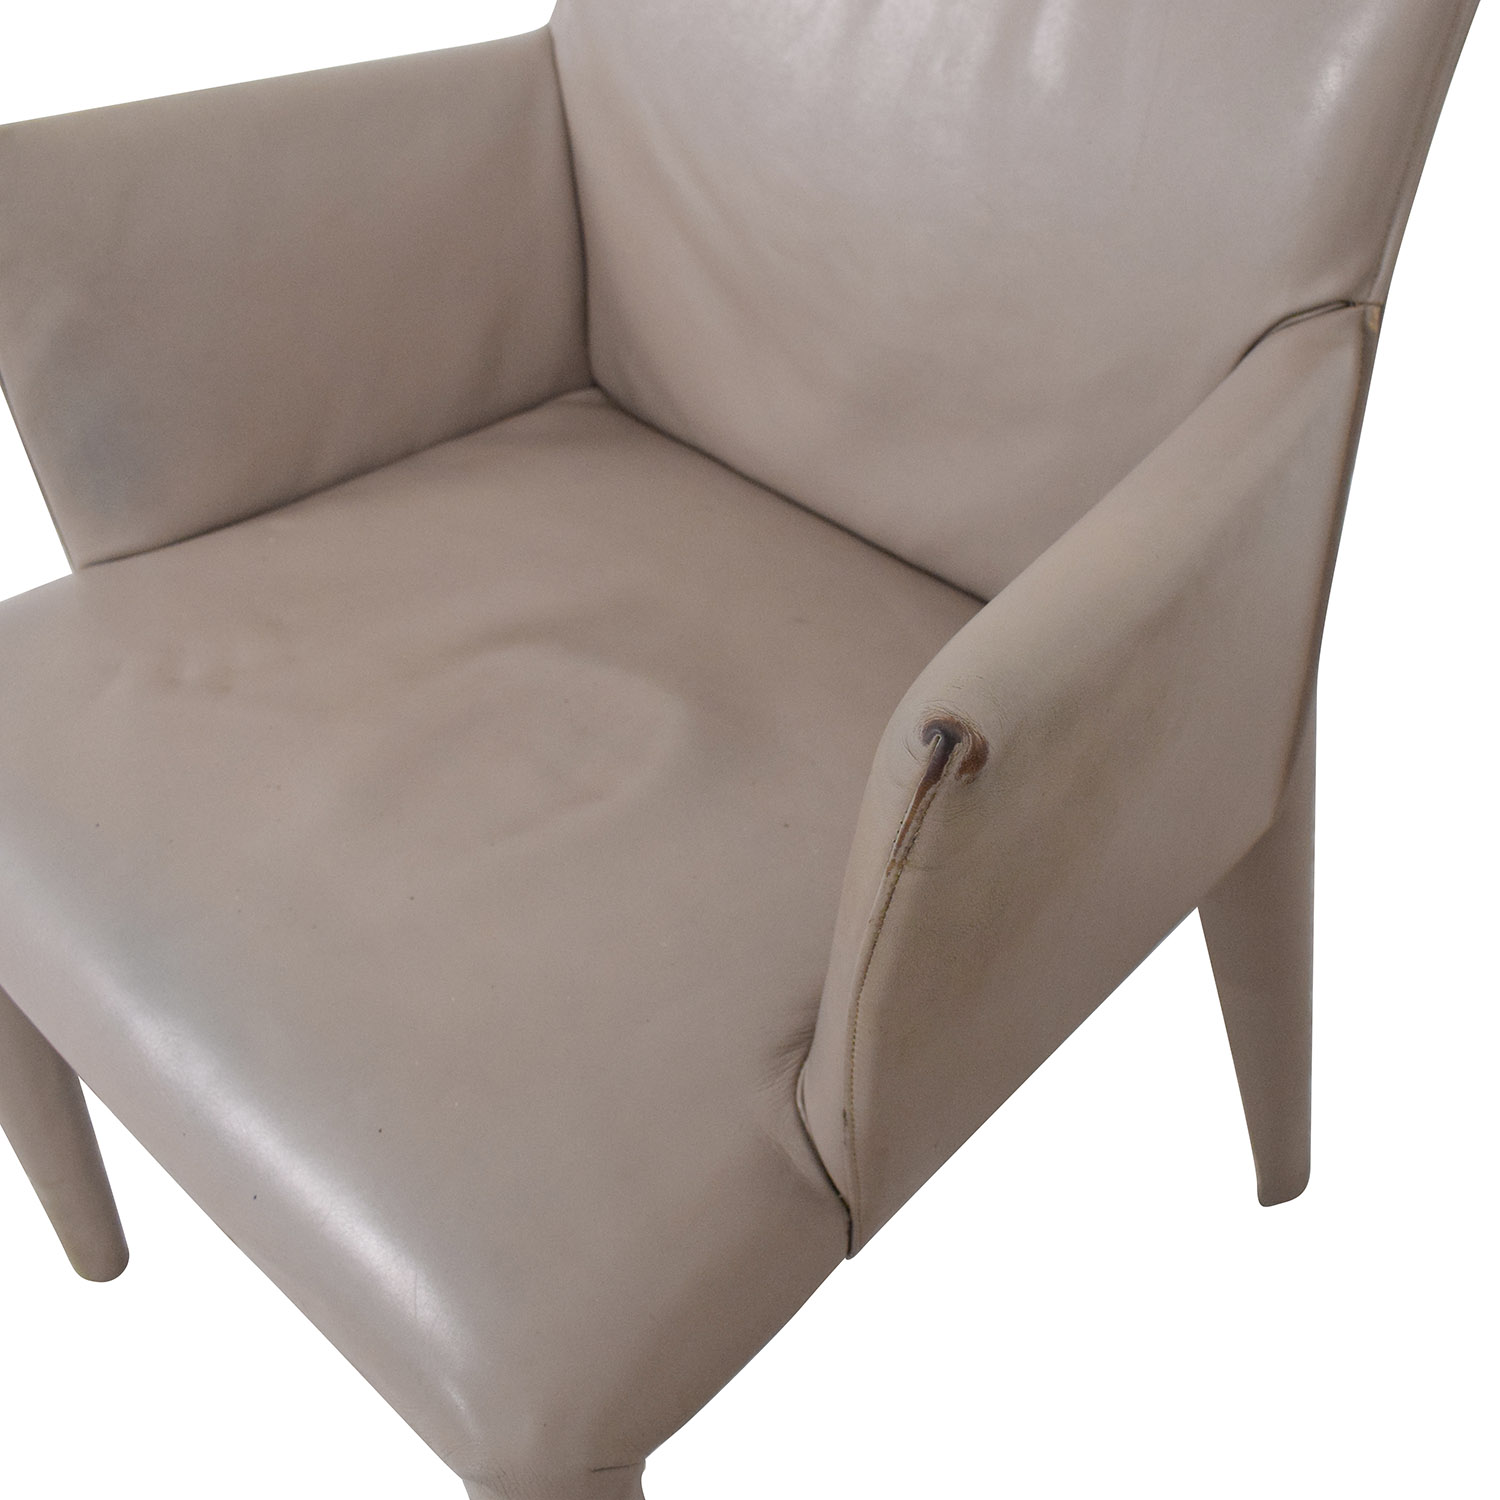 Mario Bellini Vol Au Vent Dining Arm Chairs / Dining Chairs